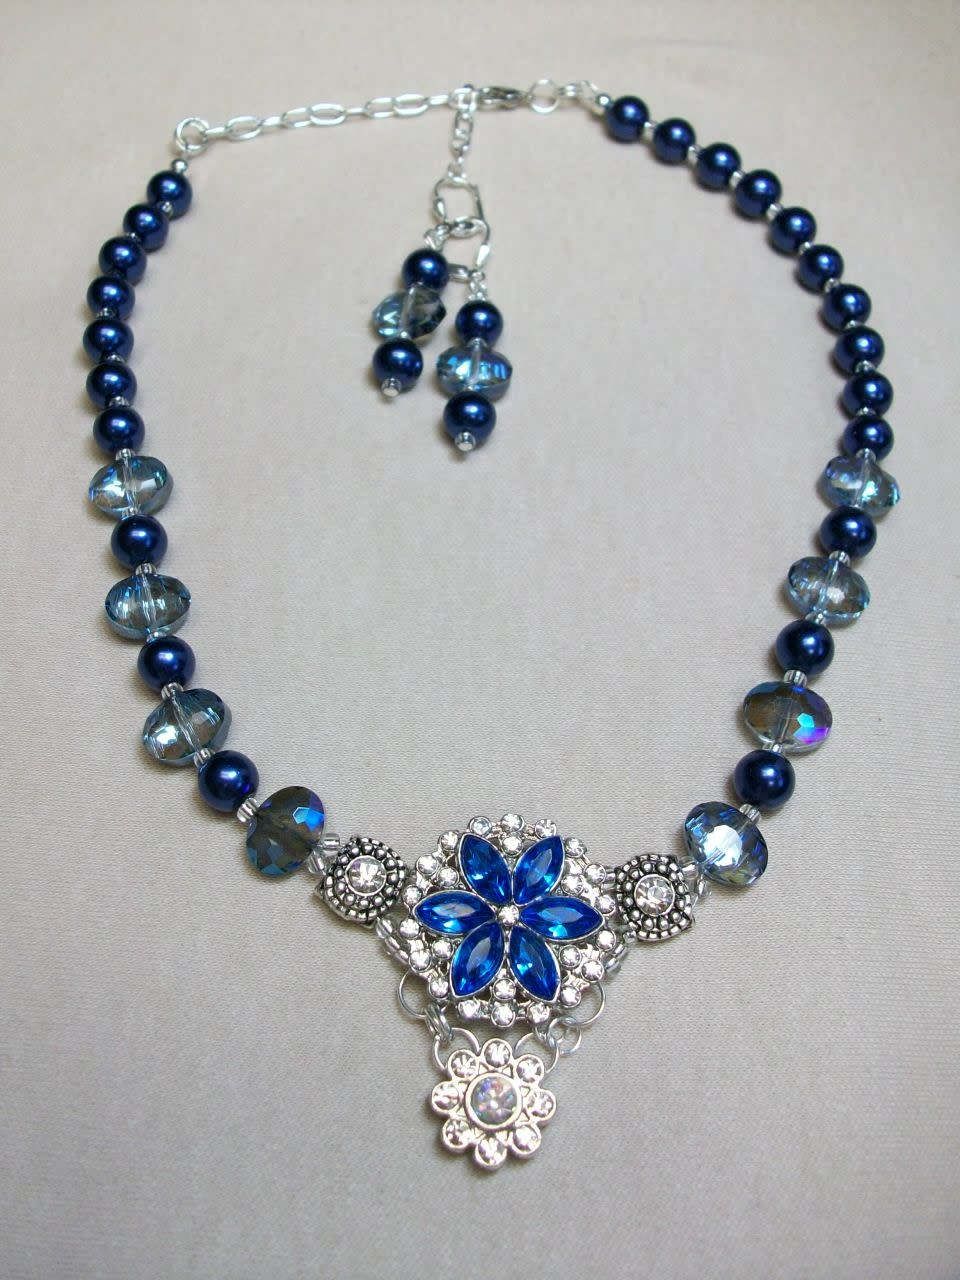 Sharon B's Originals 4 Silver & Royal Blue Crystal w/ Blue Crystal Beads Necklace & Earring Set